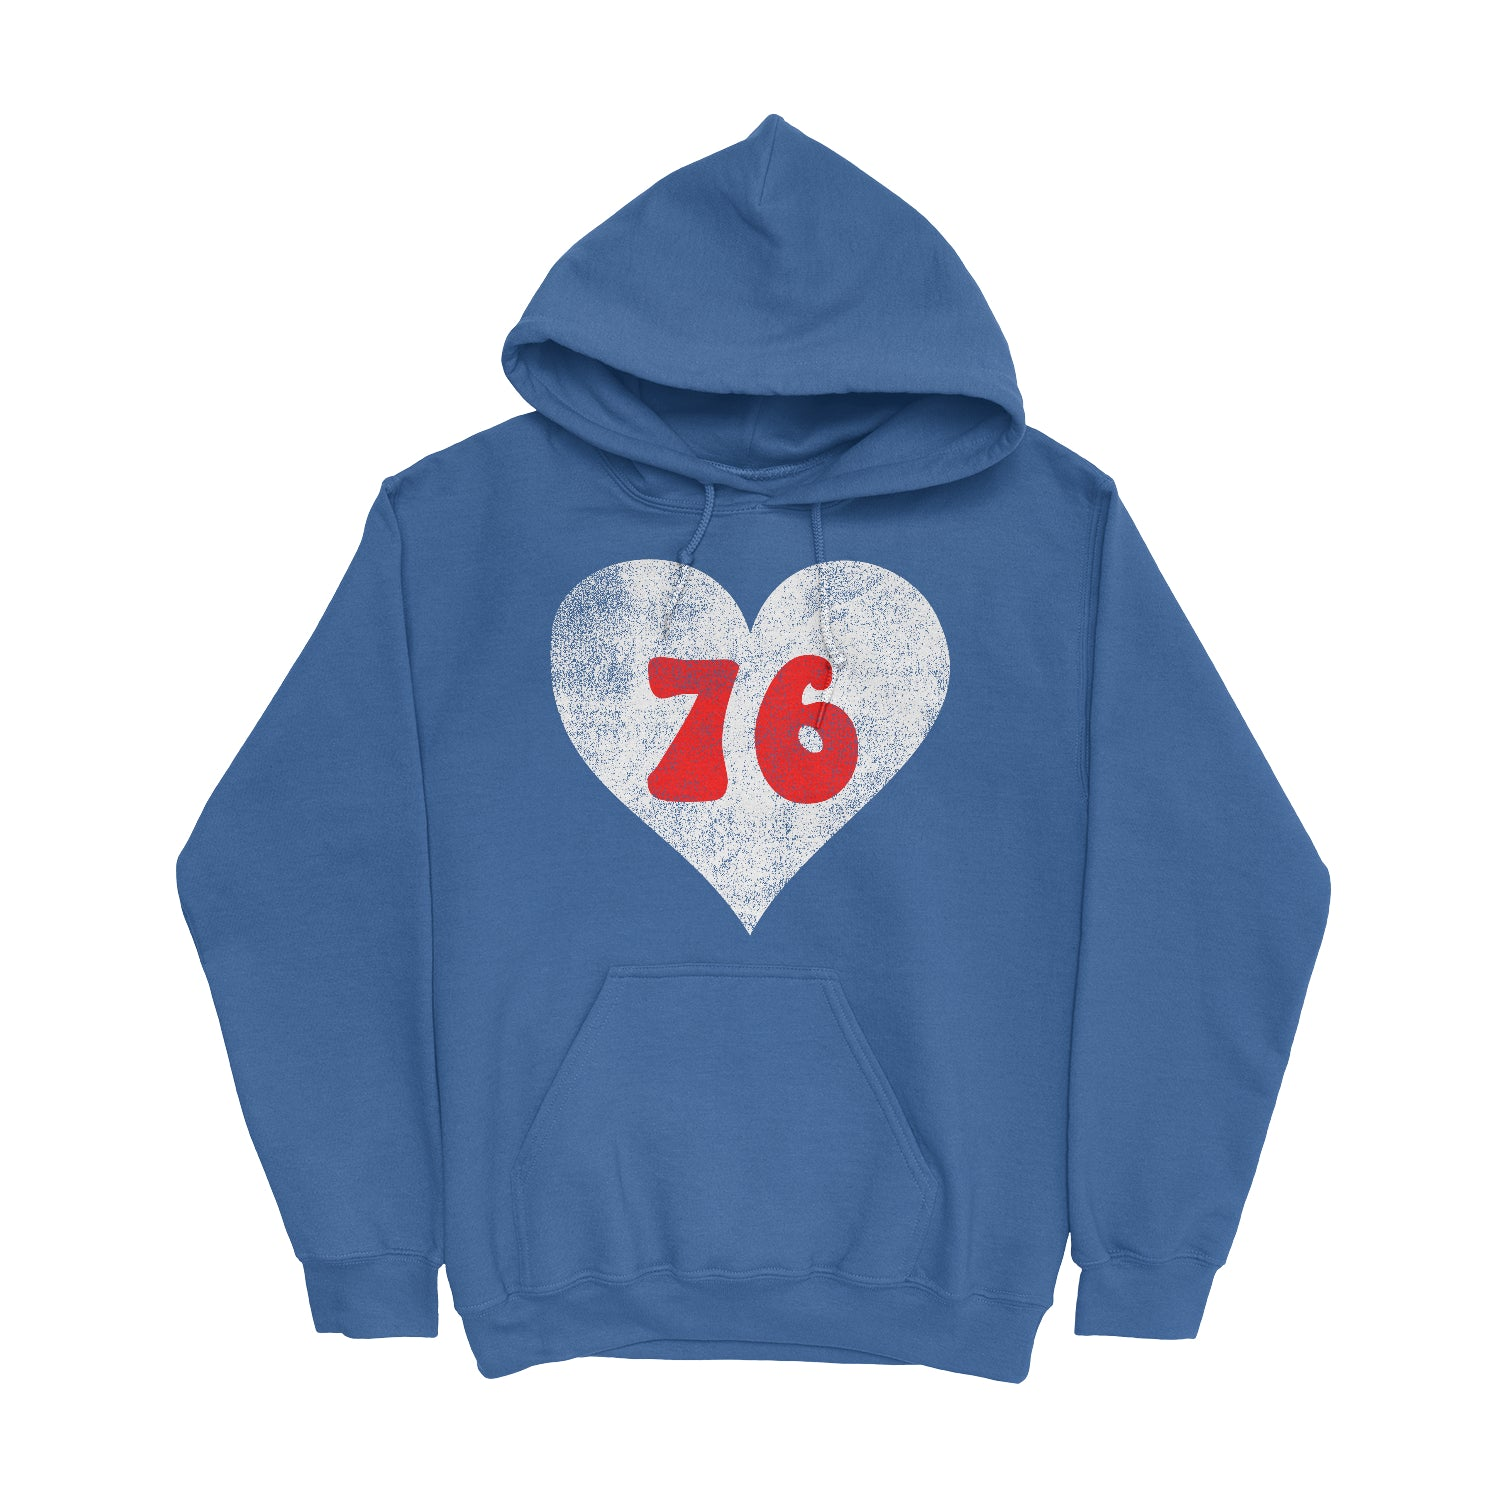 Retro Philly 76 Heart Royal Unisex Heavy Blend Hooded Sweatshirt